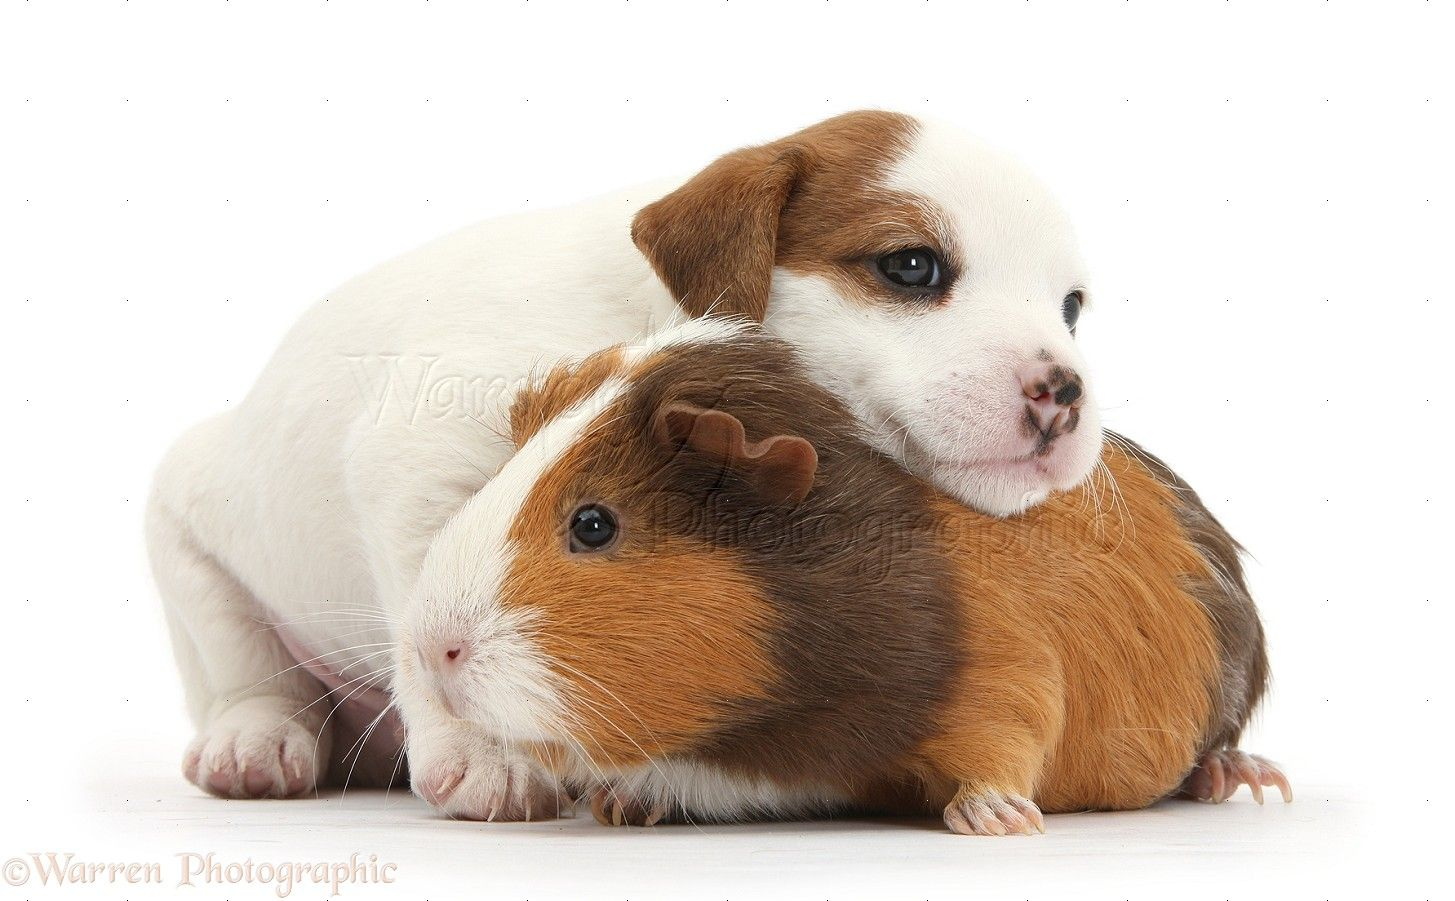 Pets: Jack Russell Terrier puppy and Guinea pig photo - WP34309